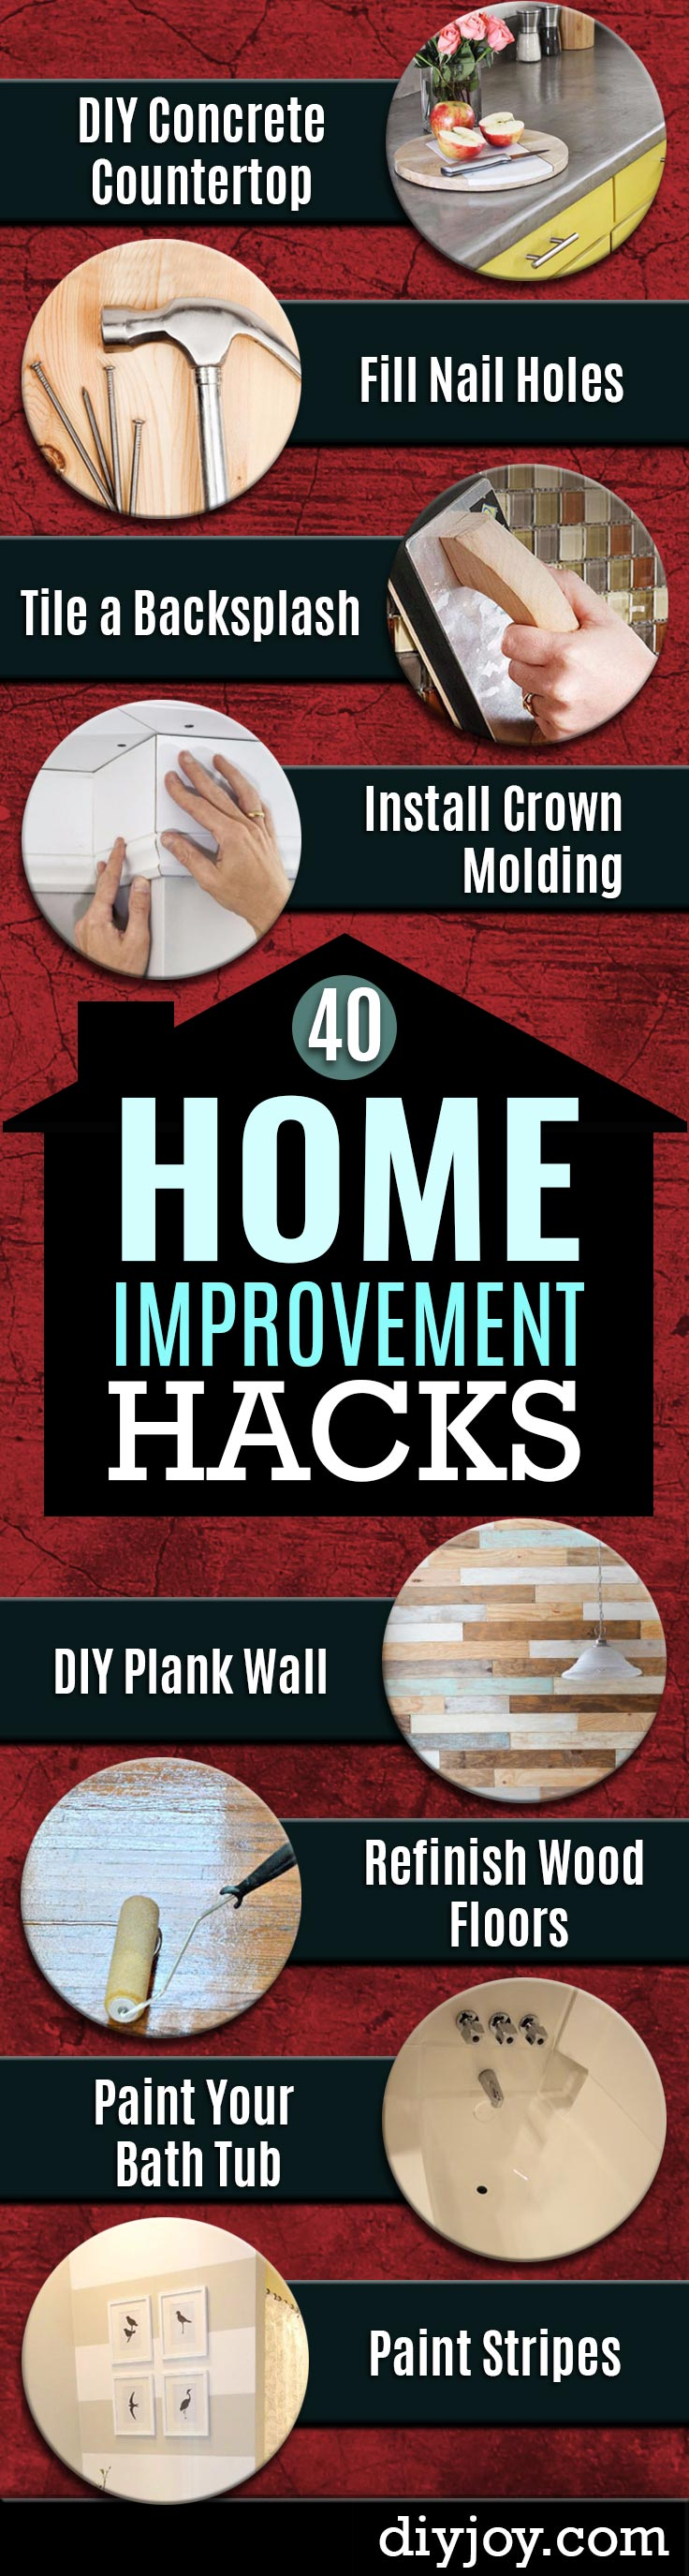 home-improvement-hacks.jpg